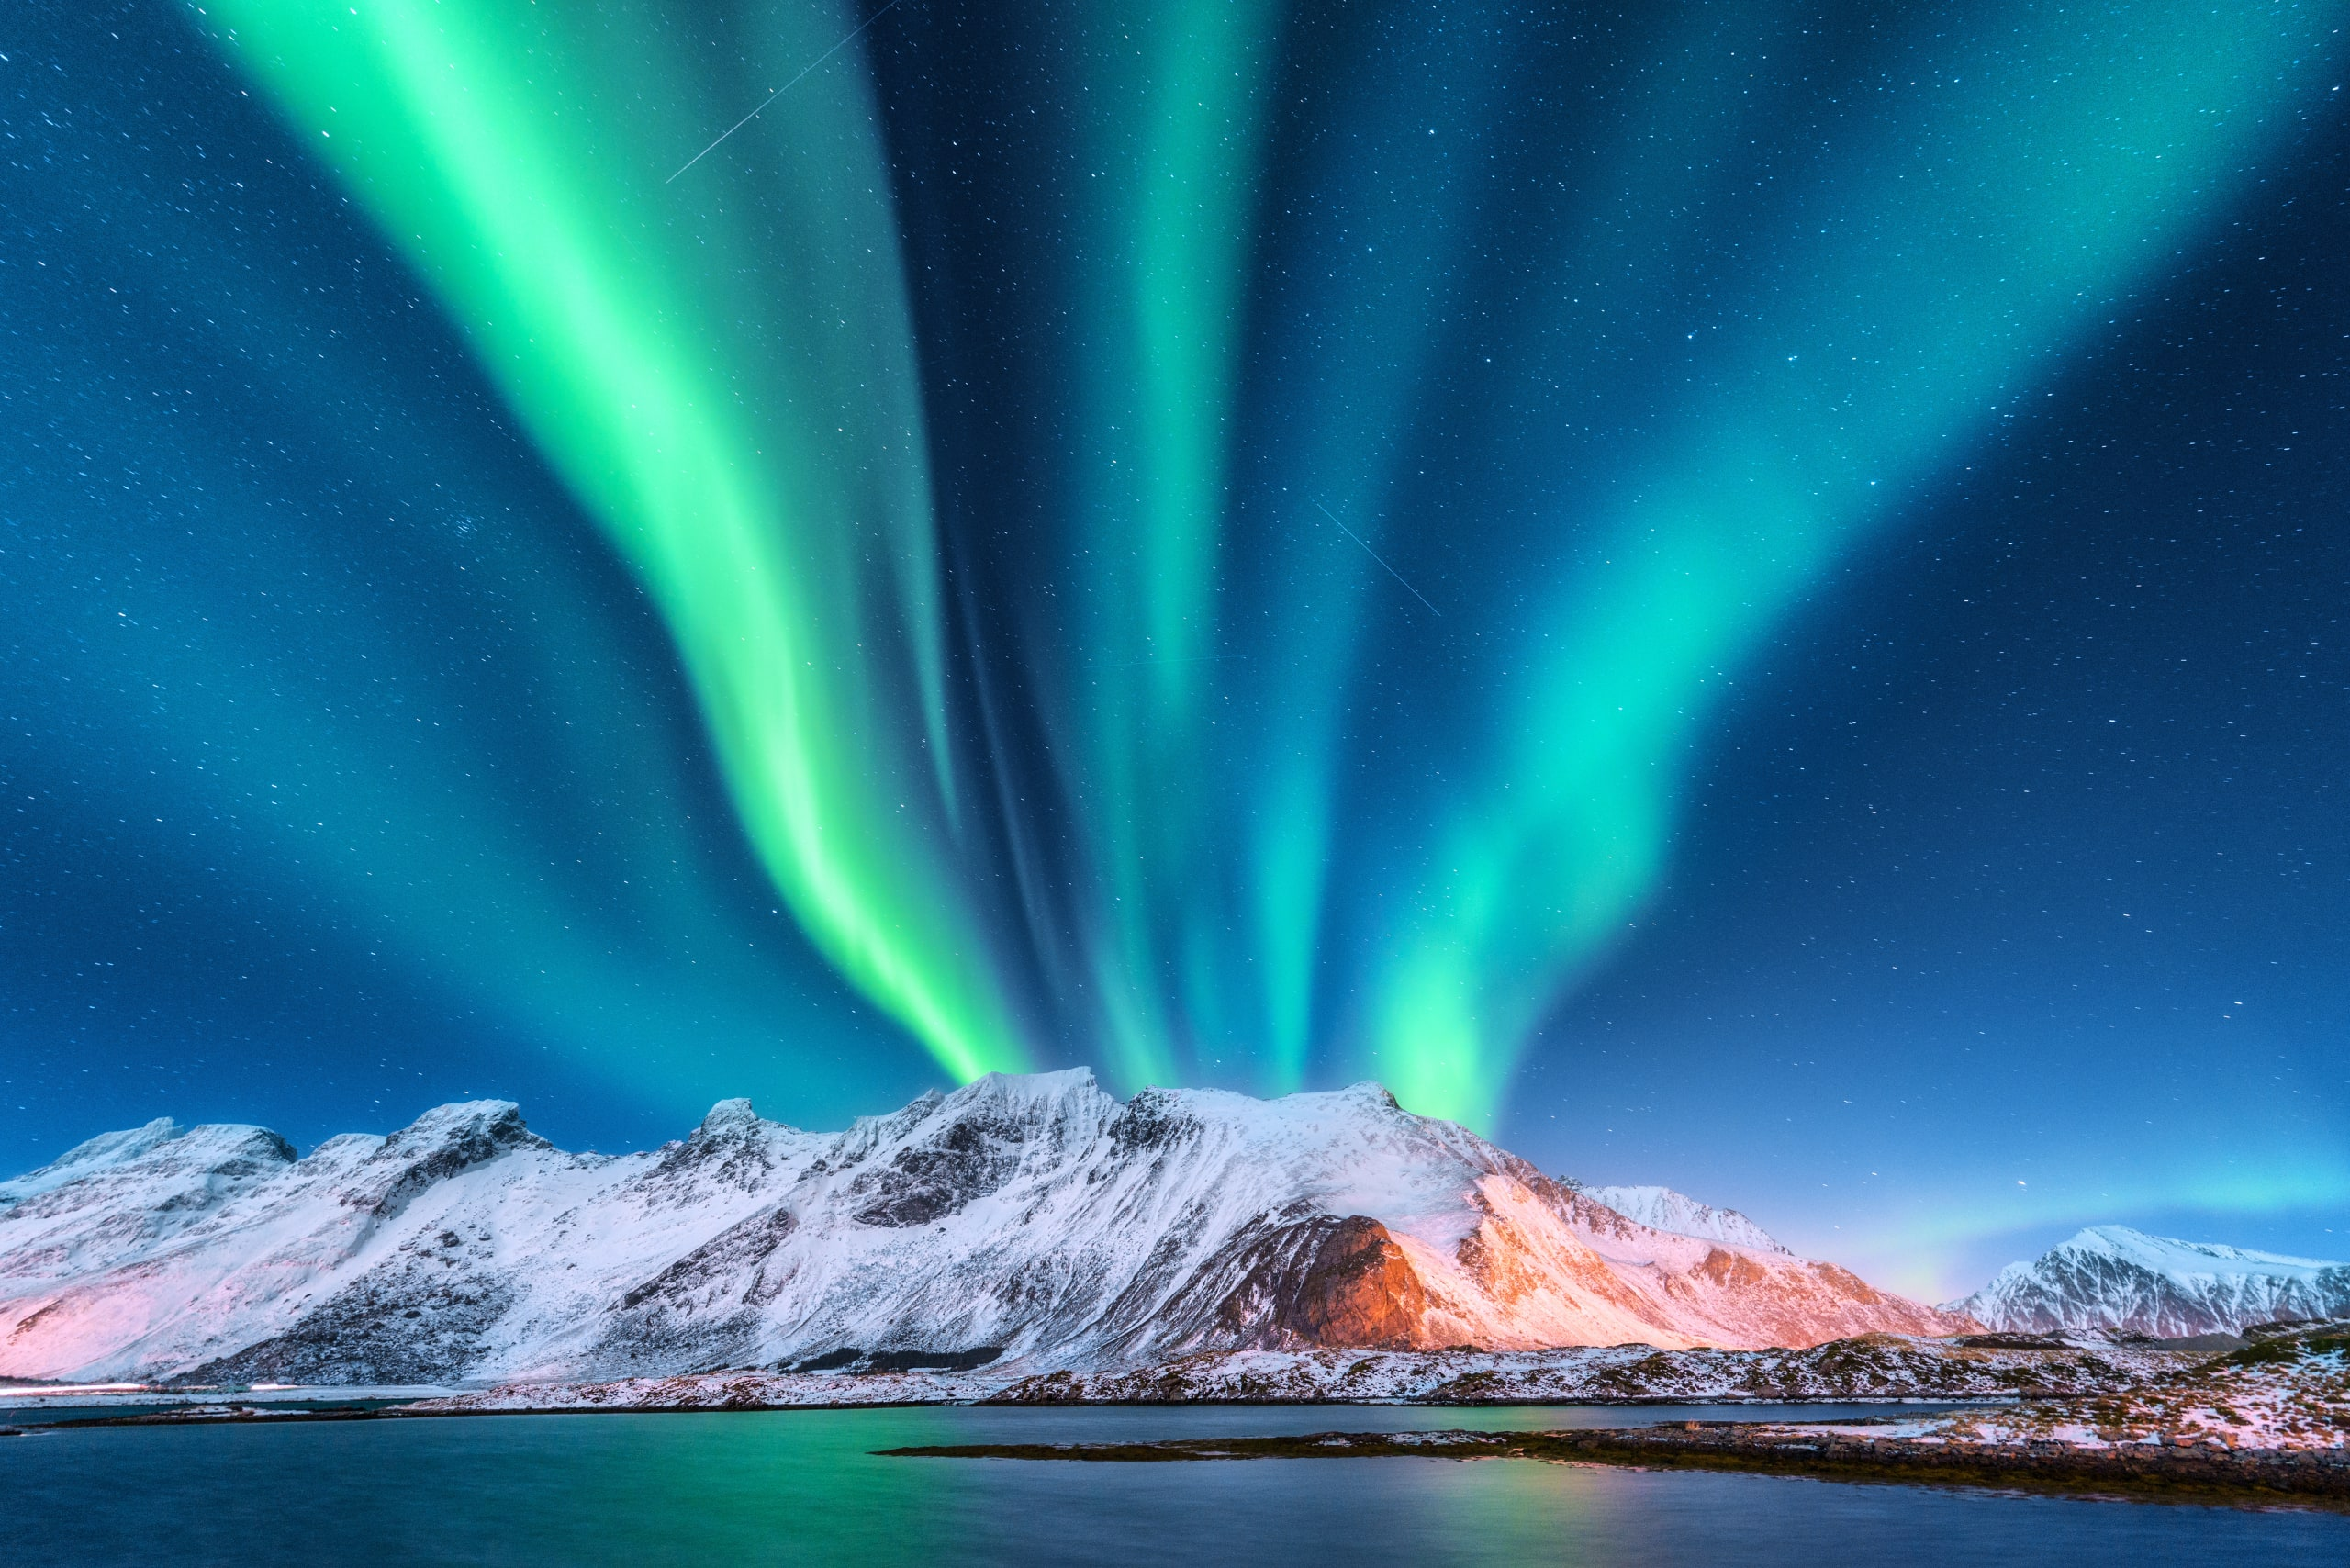 Dancing lights above snow capped mountains in Lofoten.